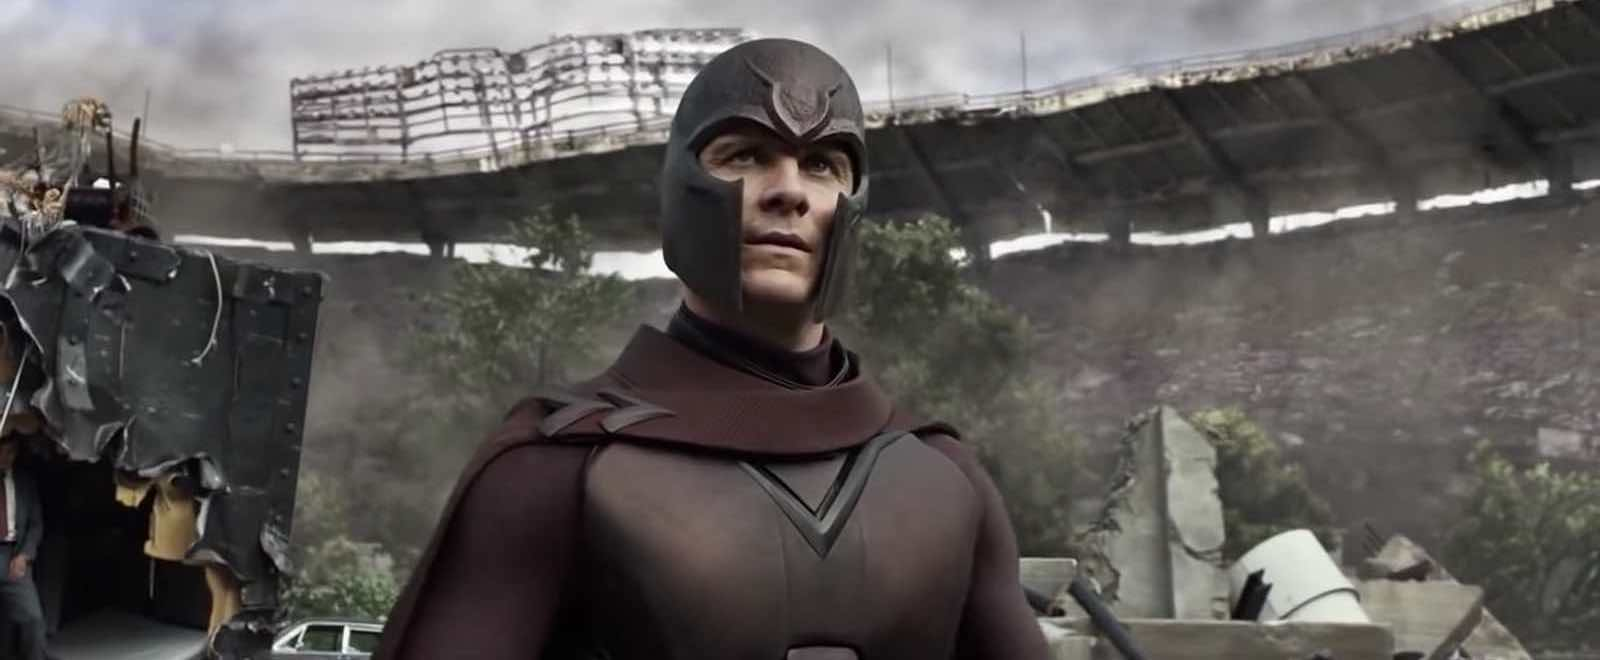 Camera Shot Guide - Medium Shot - X-Men Days of Future Past - StudioBinder